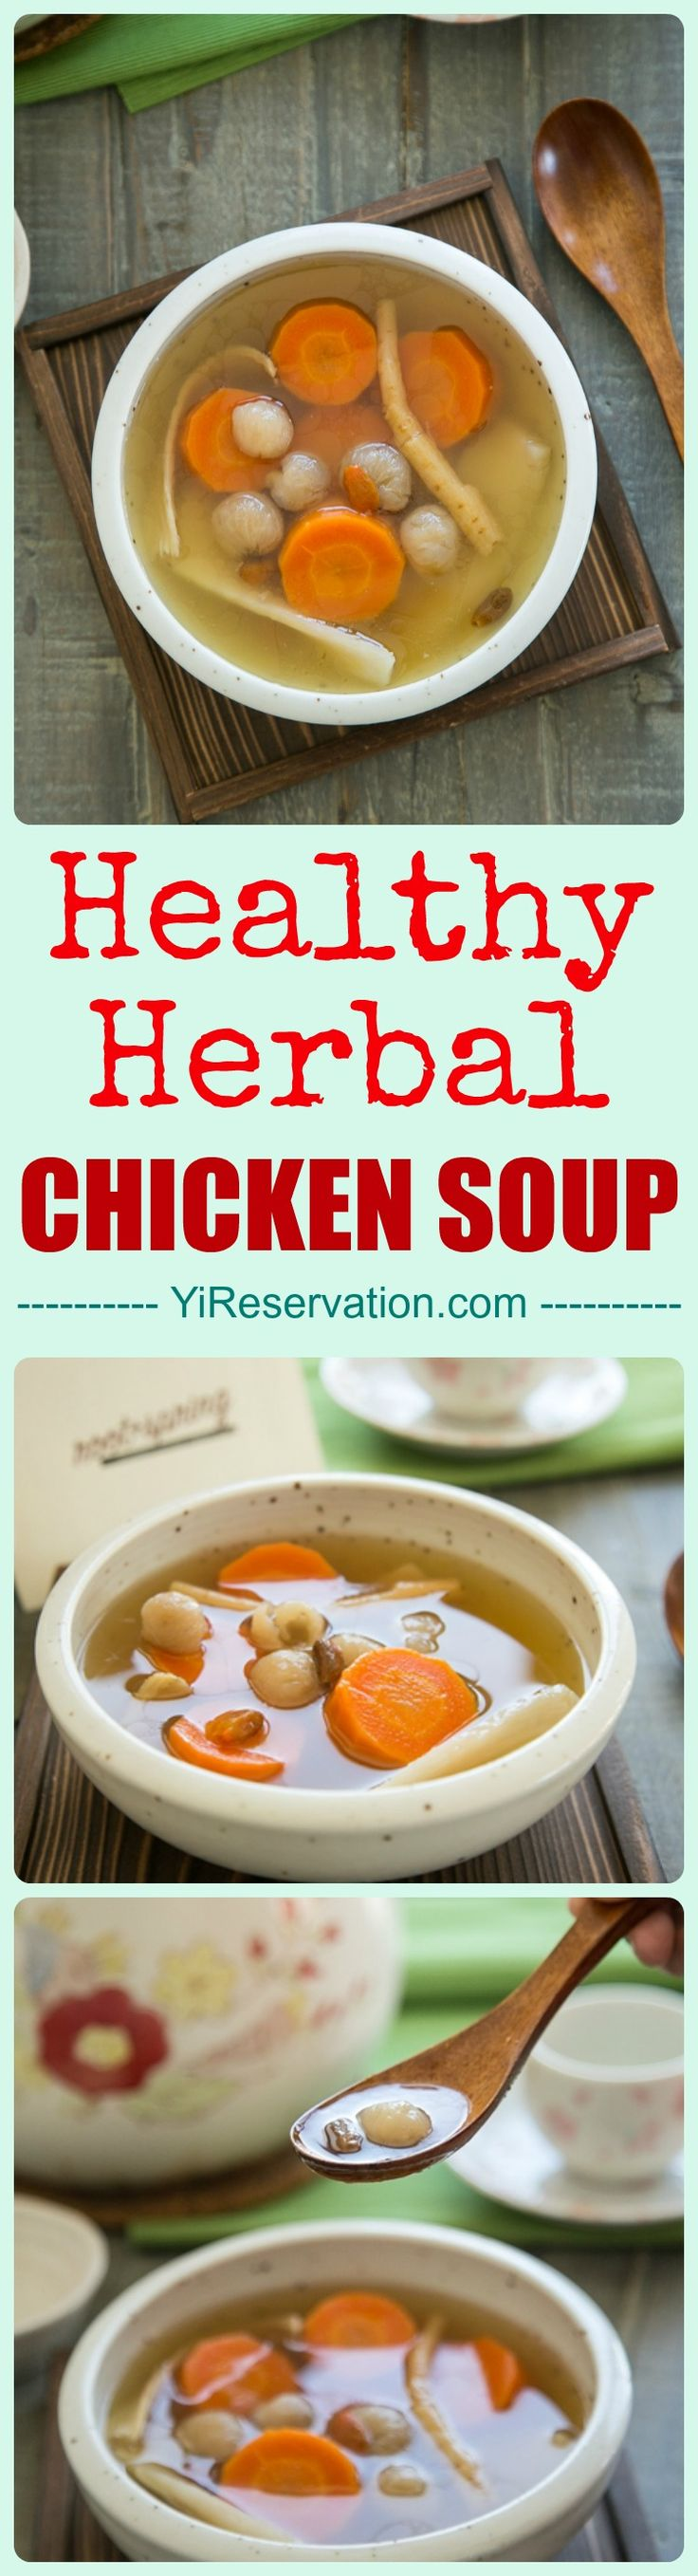 [How to] This delicious and healthy Chinese herbal chicken soup recipe not only warms your heart but also heals your body and soul.